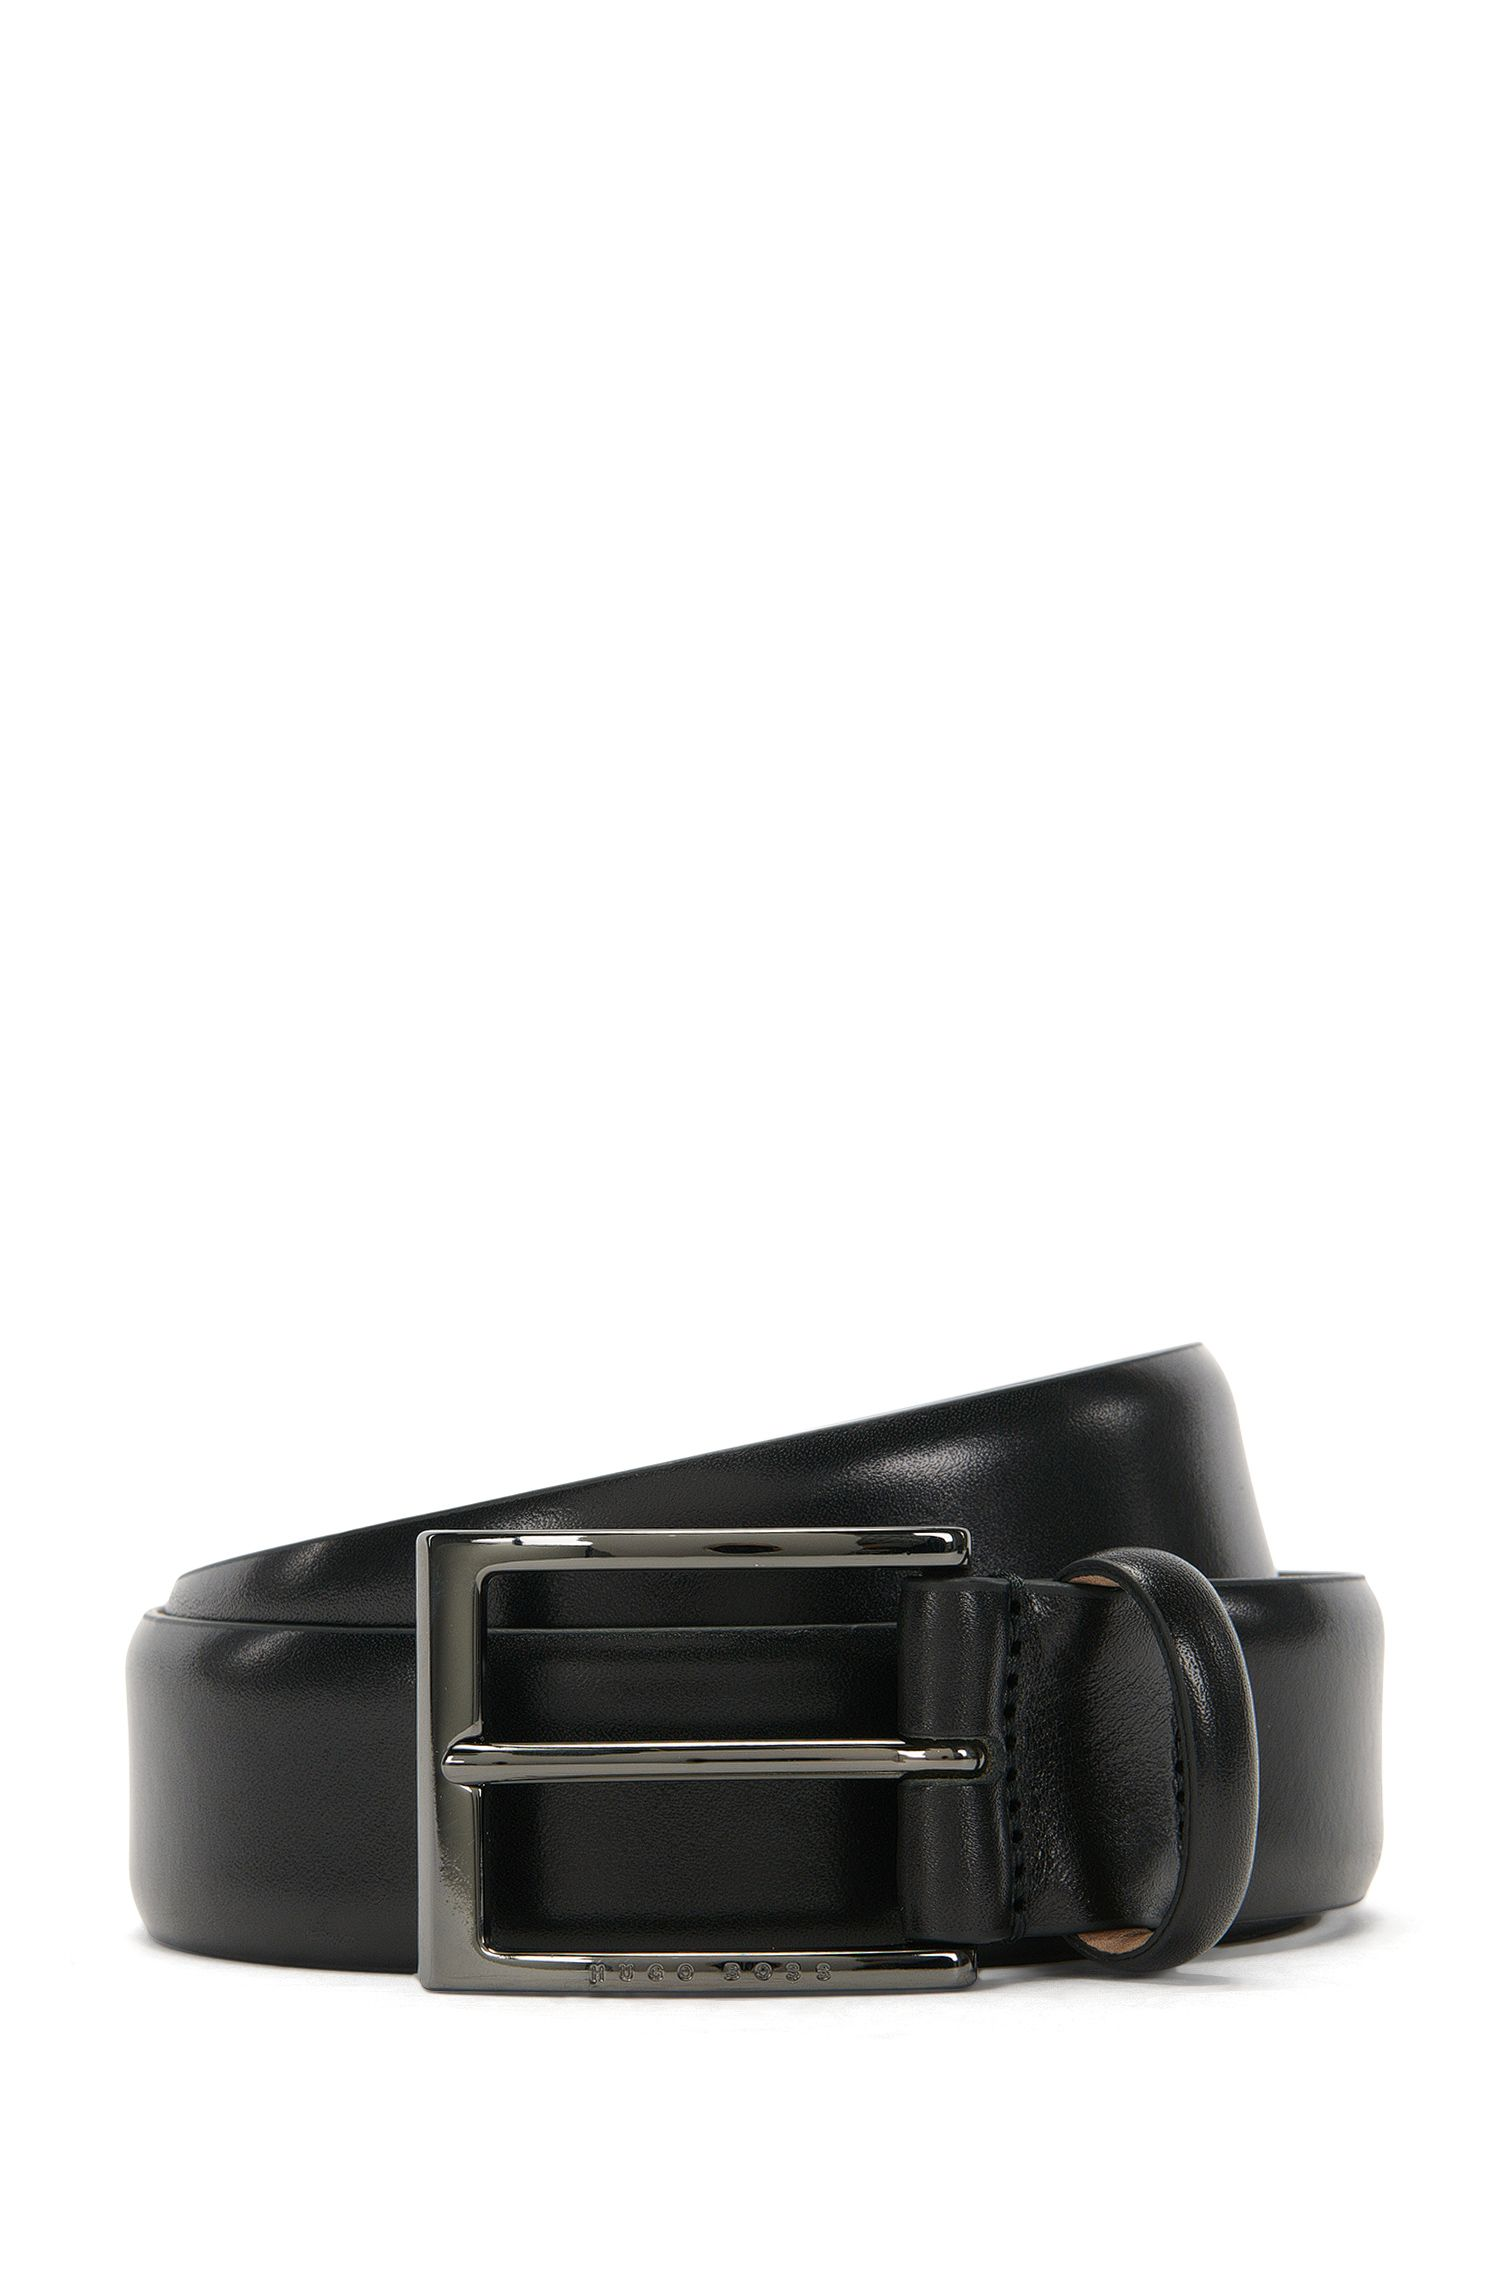 BOSS Tailored belt in two-tone vegetable-tanned leather